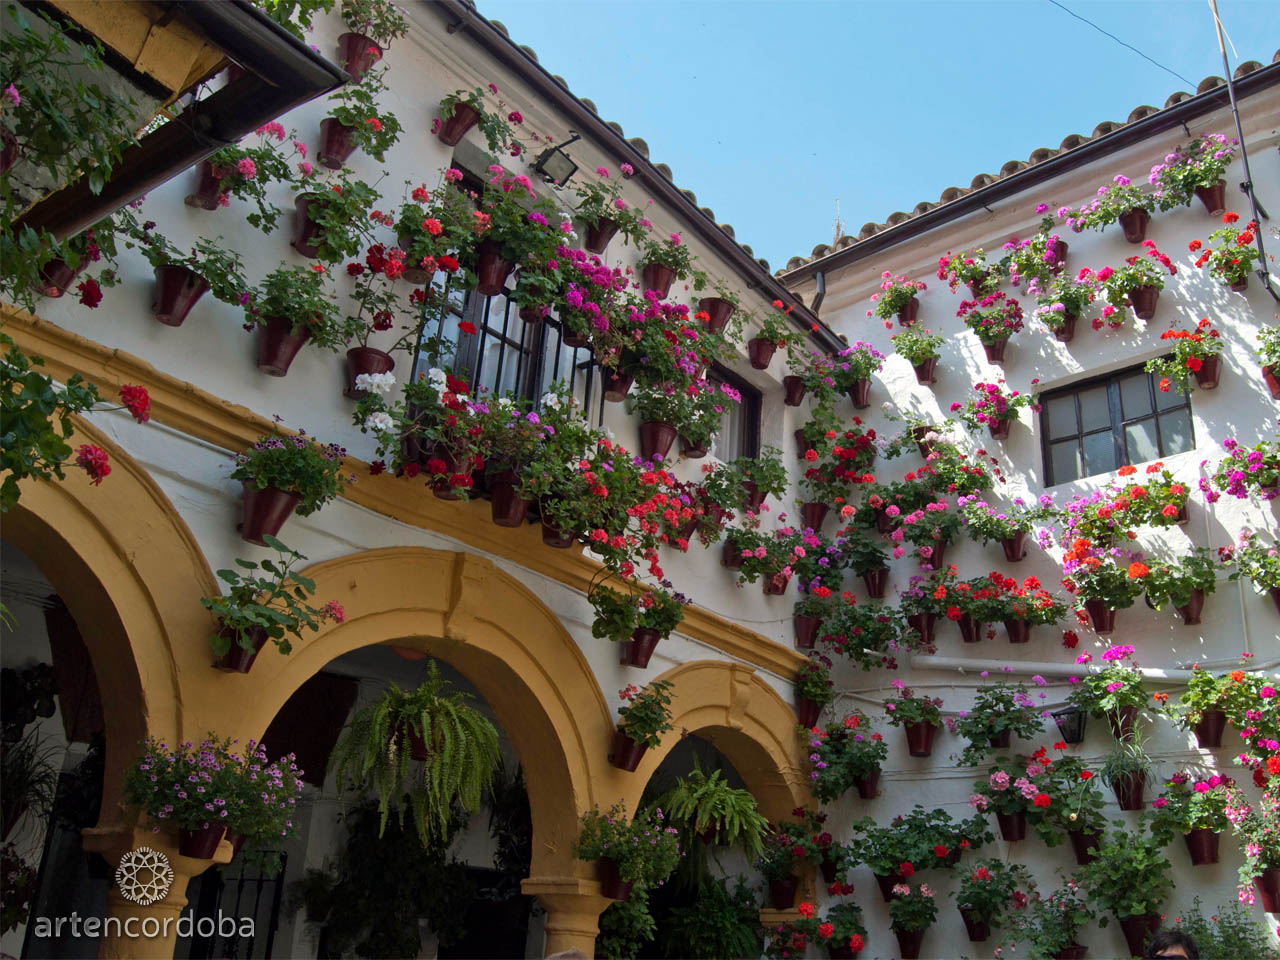 Guided Tour to the Popular Patios of Cordoba